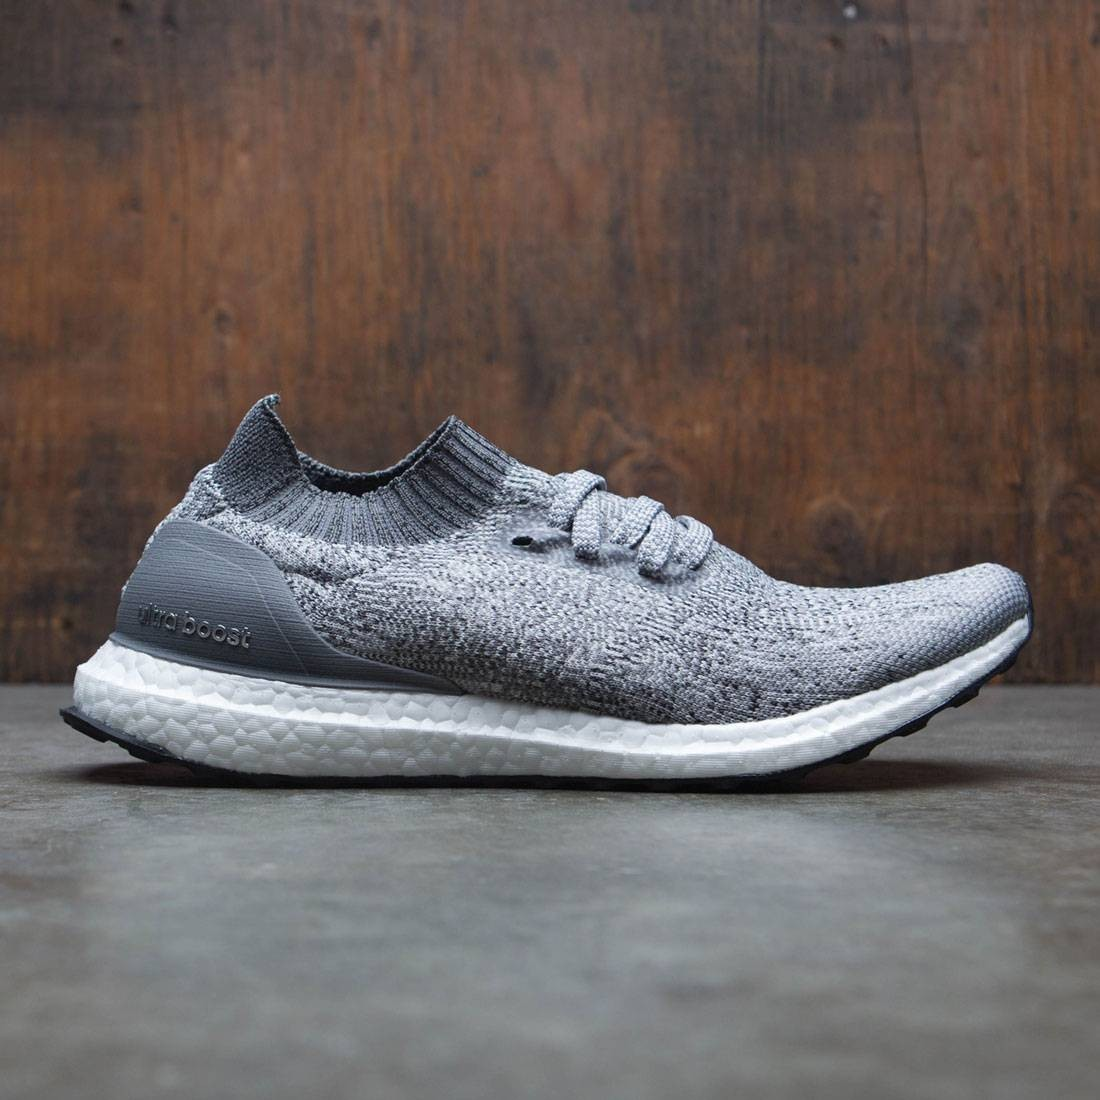 a332d897a26cb Adidas Men UltraBOOST Uncaged gray grey two grey four